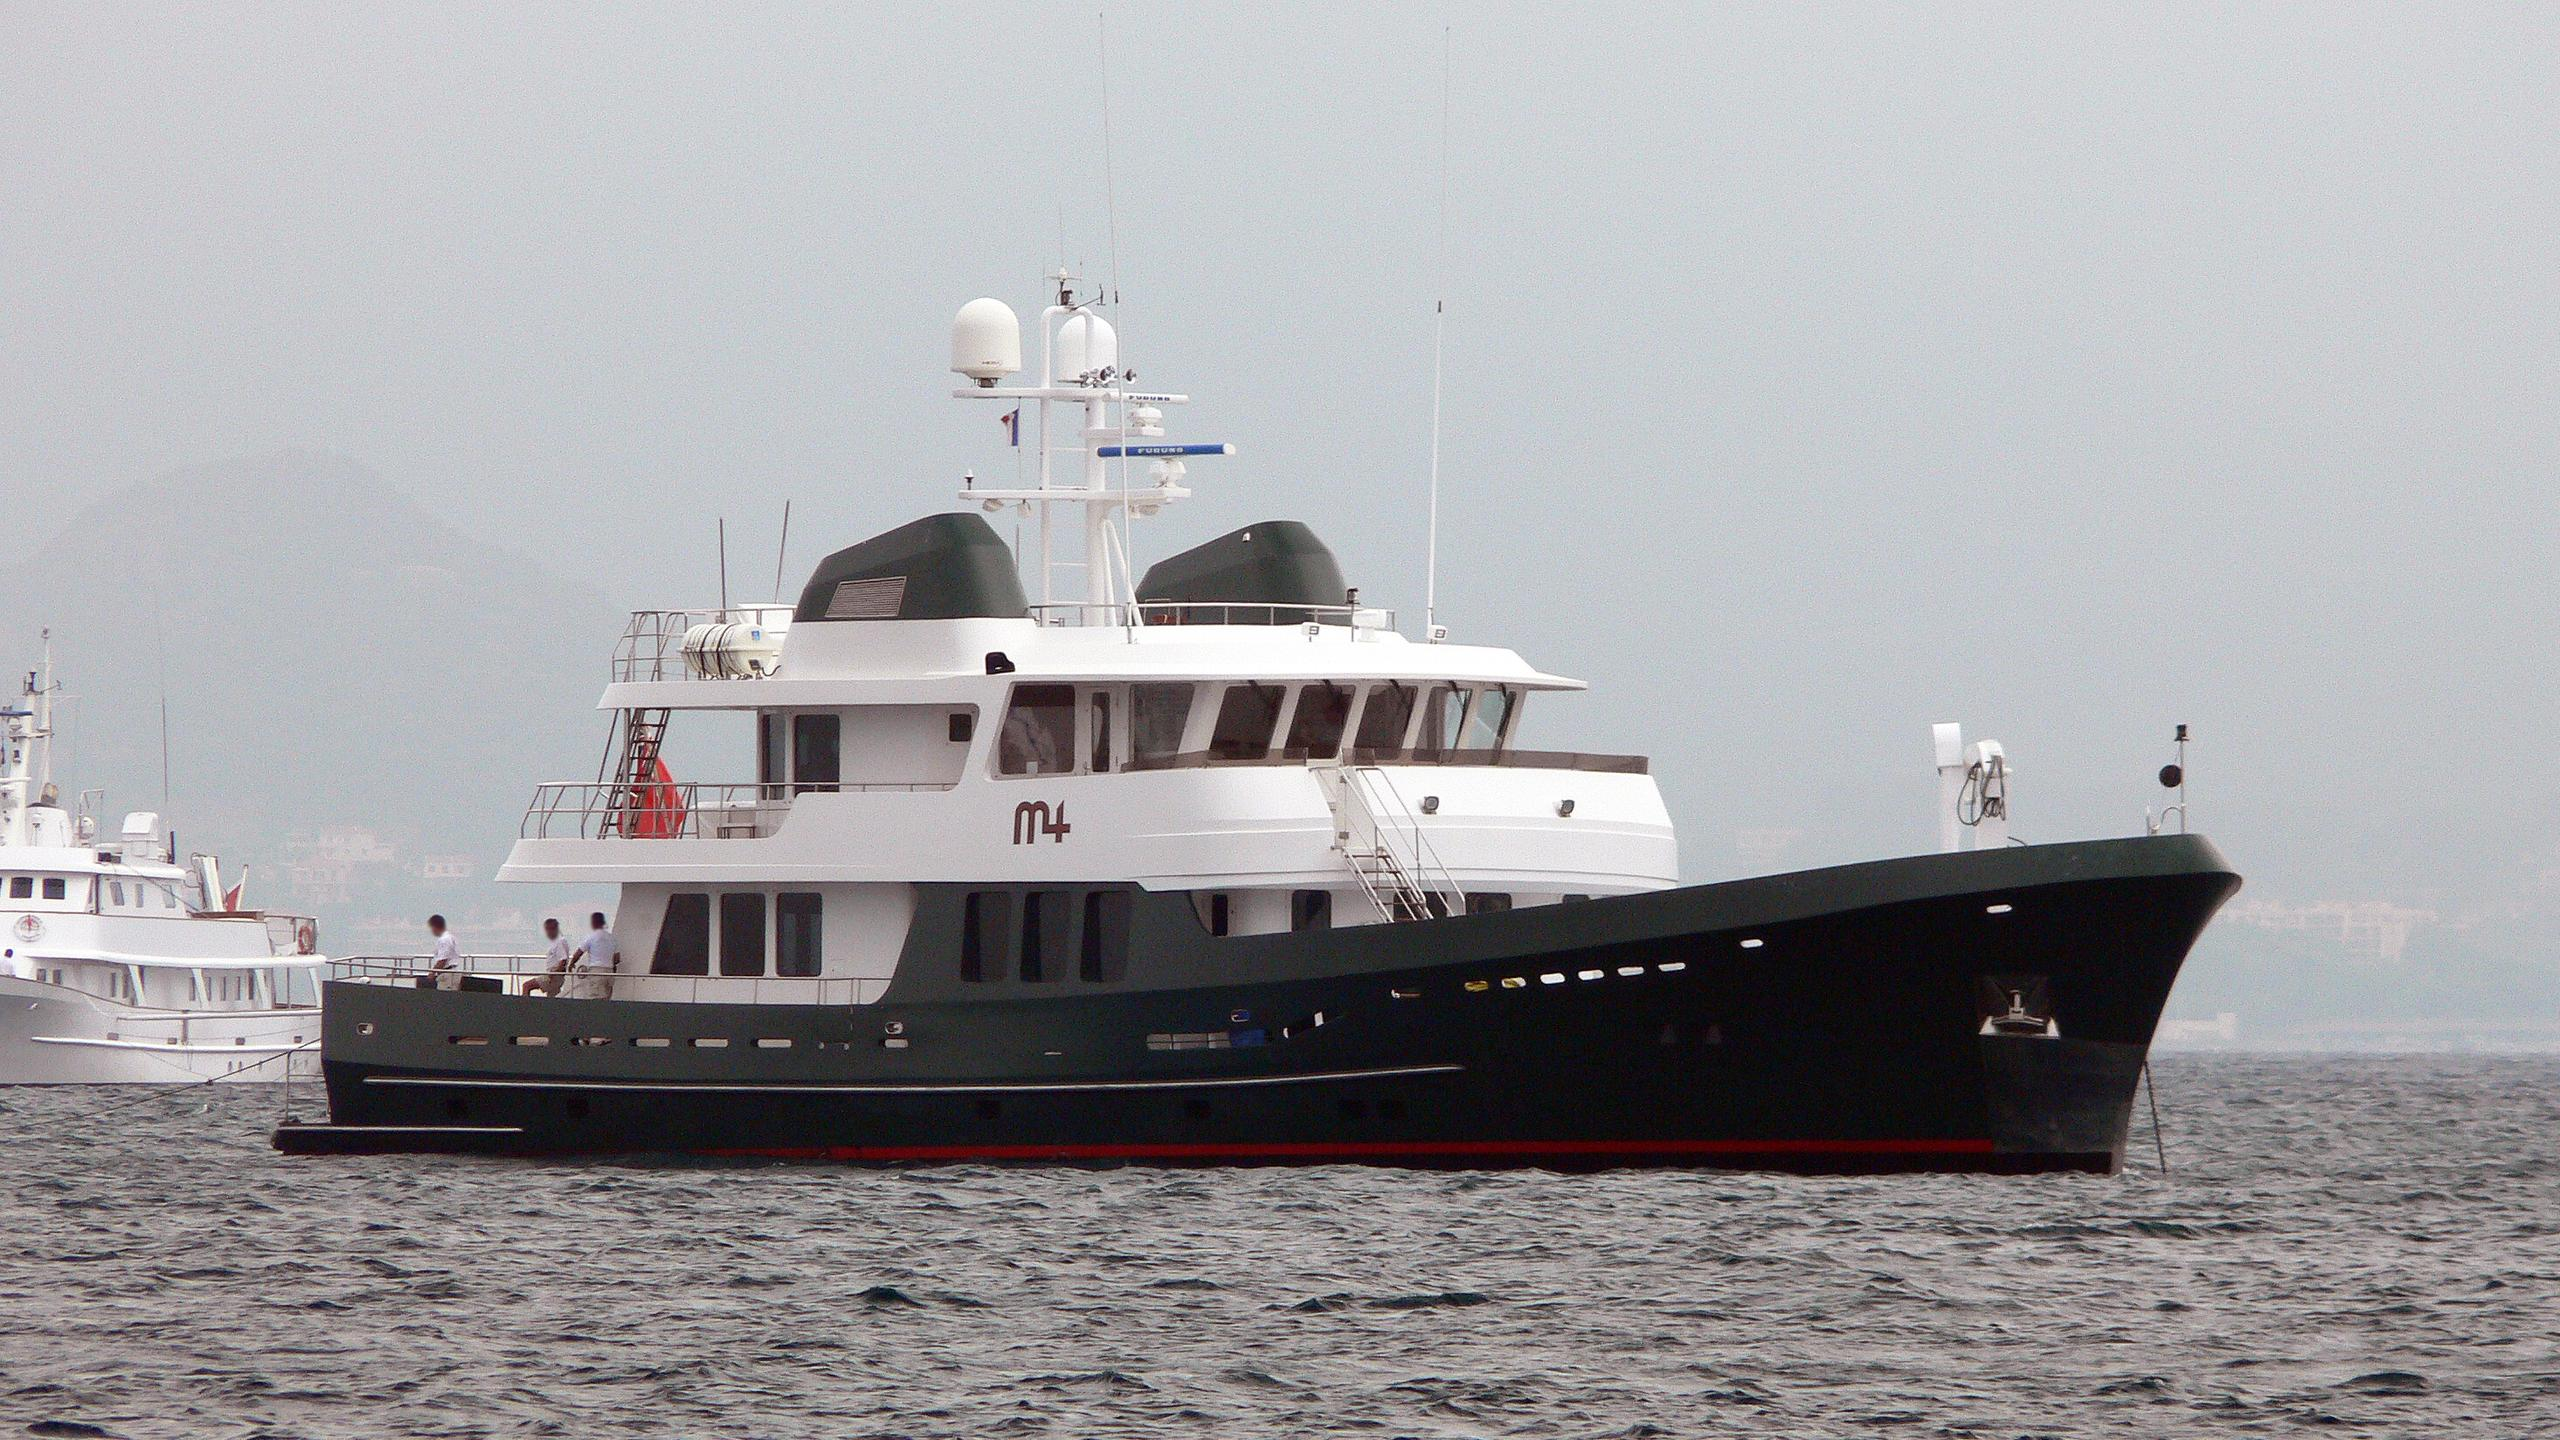 M4-explorer-yacht-rmk-peer-gynt-108-2002-33m-moored-profile